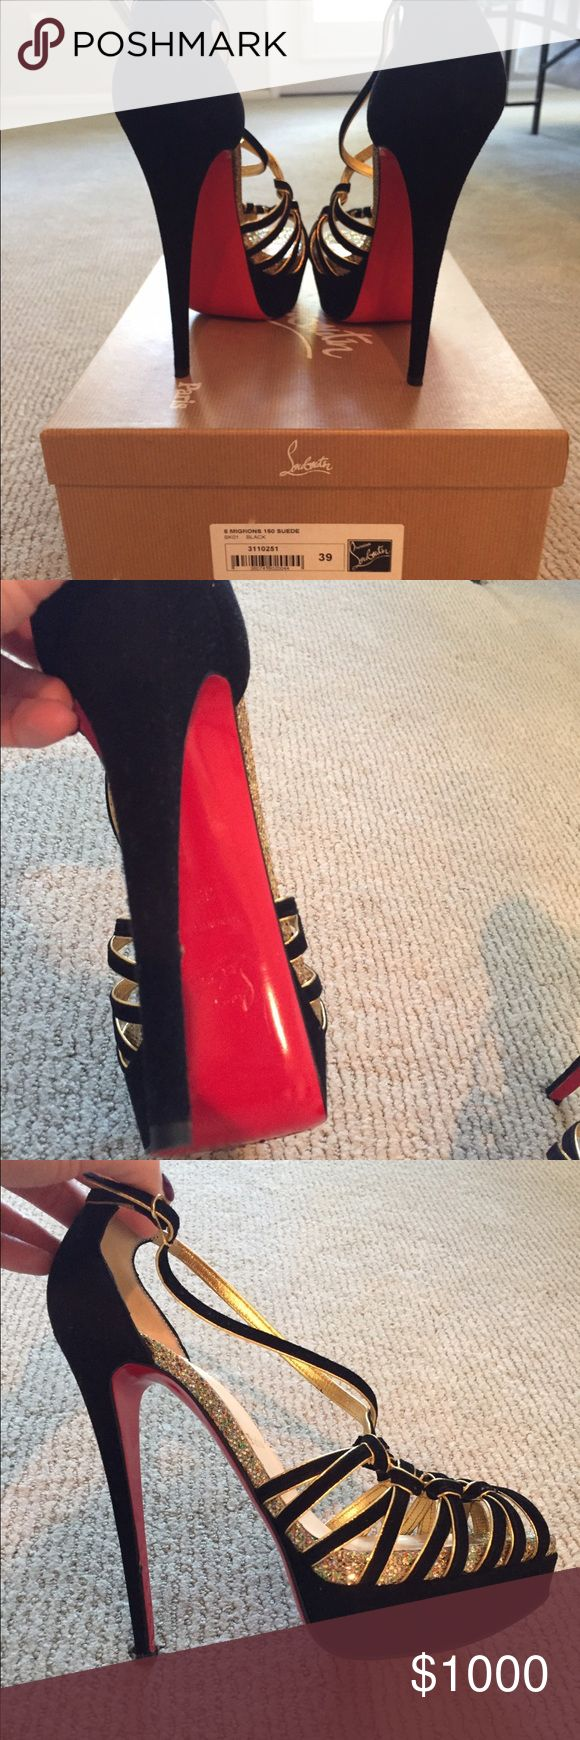 """Christian Louboutin 8 Mignons 150mm Suede, Black Christian Louboutin Shoes Style: """"8 Mignons 150 Suede Black"""" Size: 39  Height: 150 mm (with platform)  *only worn once for a few hours, bottoms show they were clearly only worn once   *purchased at Costa Mesa boutique in South Coast Plaza. Store receipt/transaction available if you would like to see. (Purchase price was $1300) Christian Louboutin Shoes Heels"""